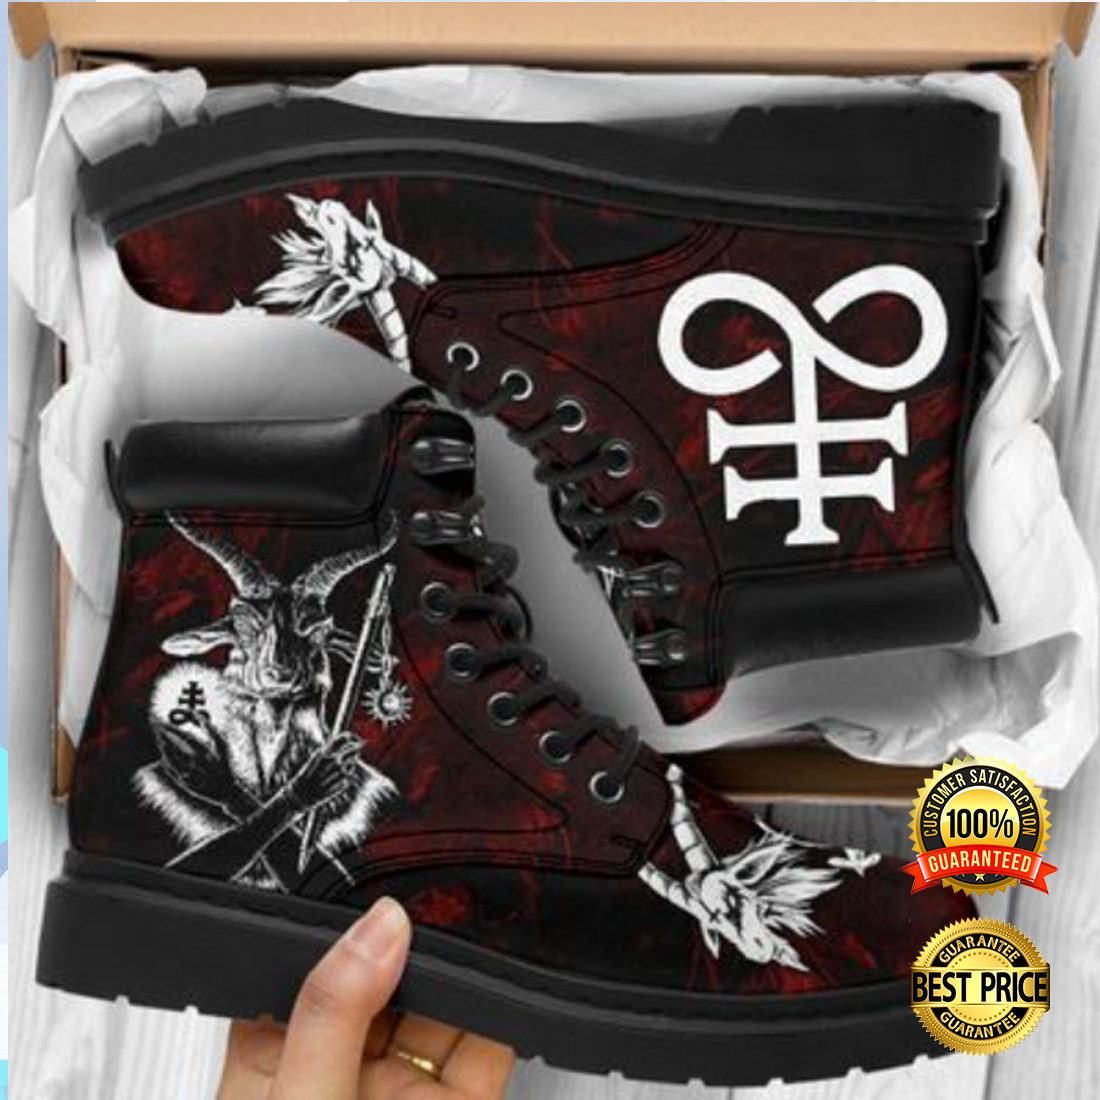 [WOW] BAPHOMET TIMBERLAND BOOTS